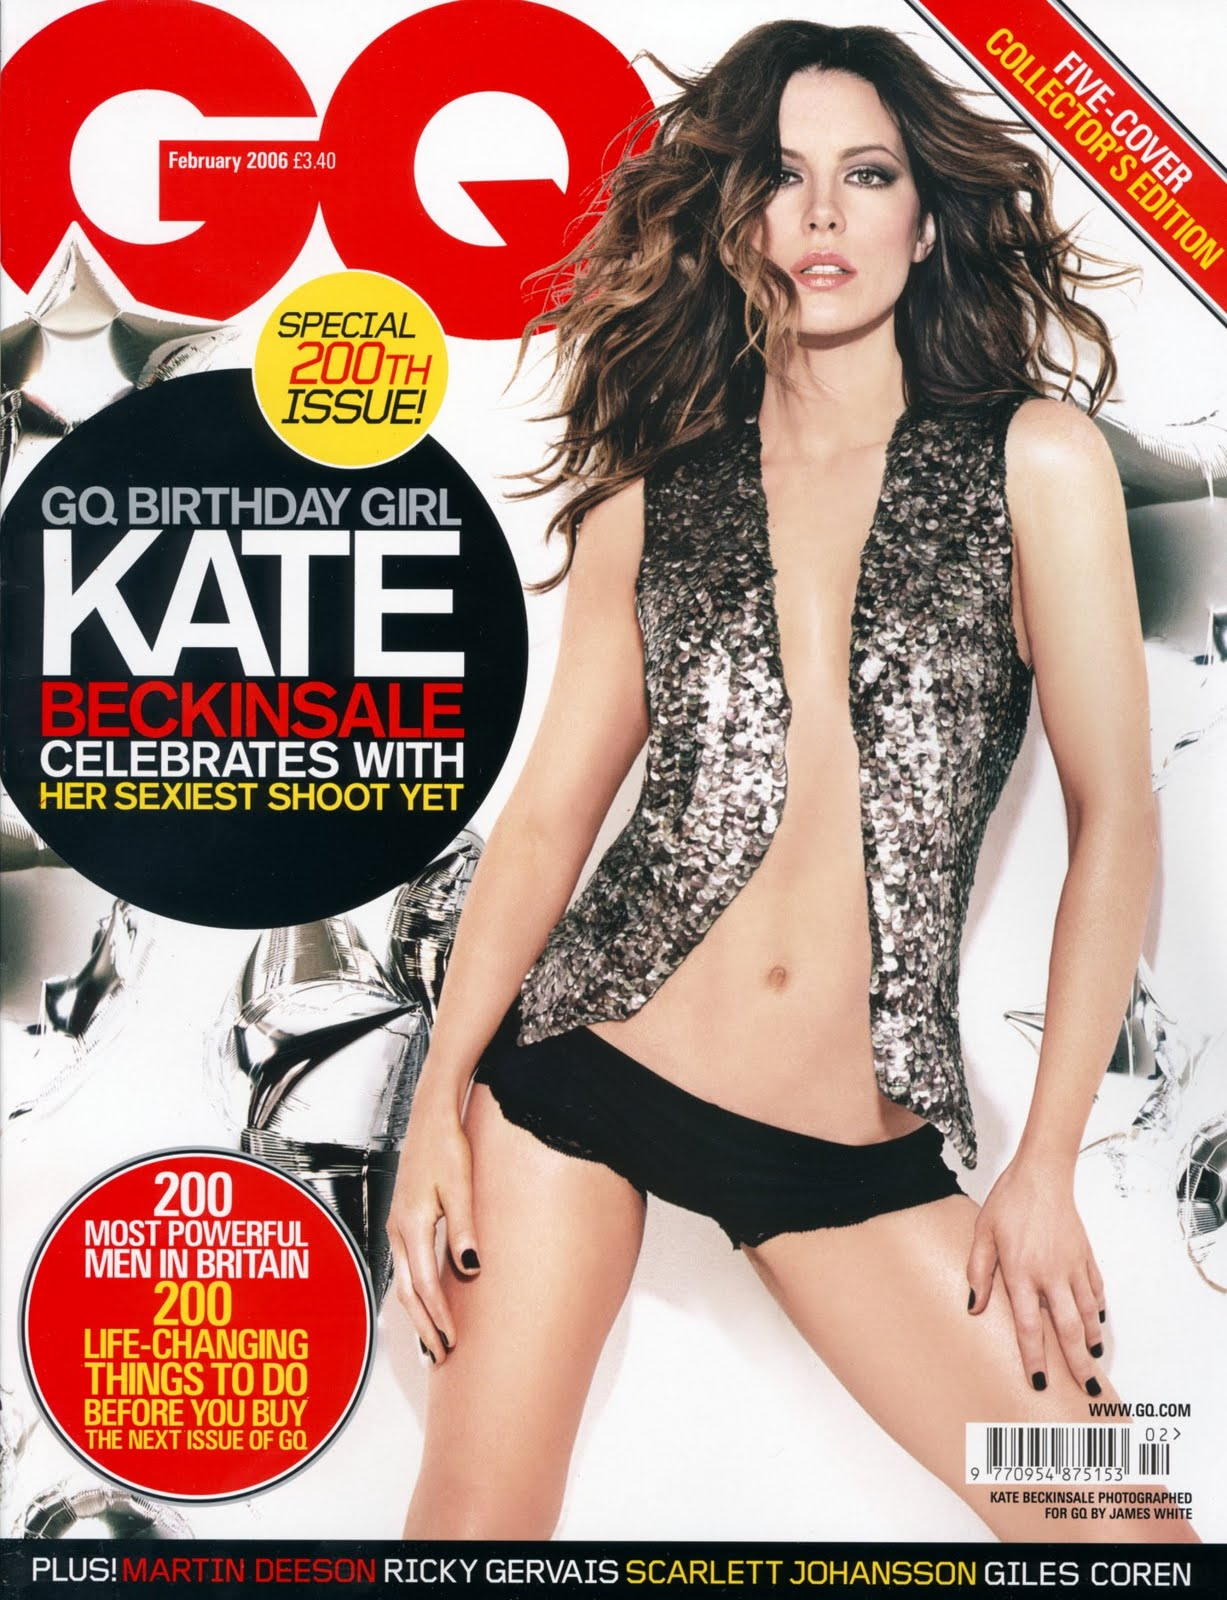 http://1.bp.blogspot.com/_pGTlBw_z2AM/TJjwCnn4GfI/AAAAAAAAALk/NVhvPTN2nD8/s1600/kate-beckinsale-gq-uk-02+nude+(qguapas.blogspot.com).jpg